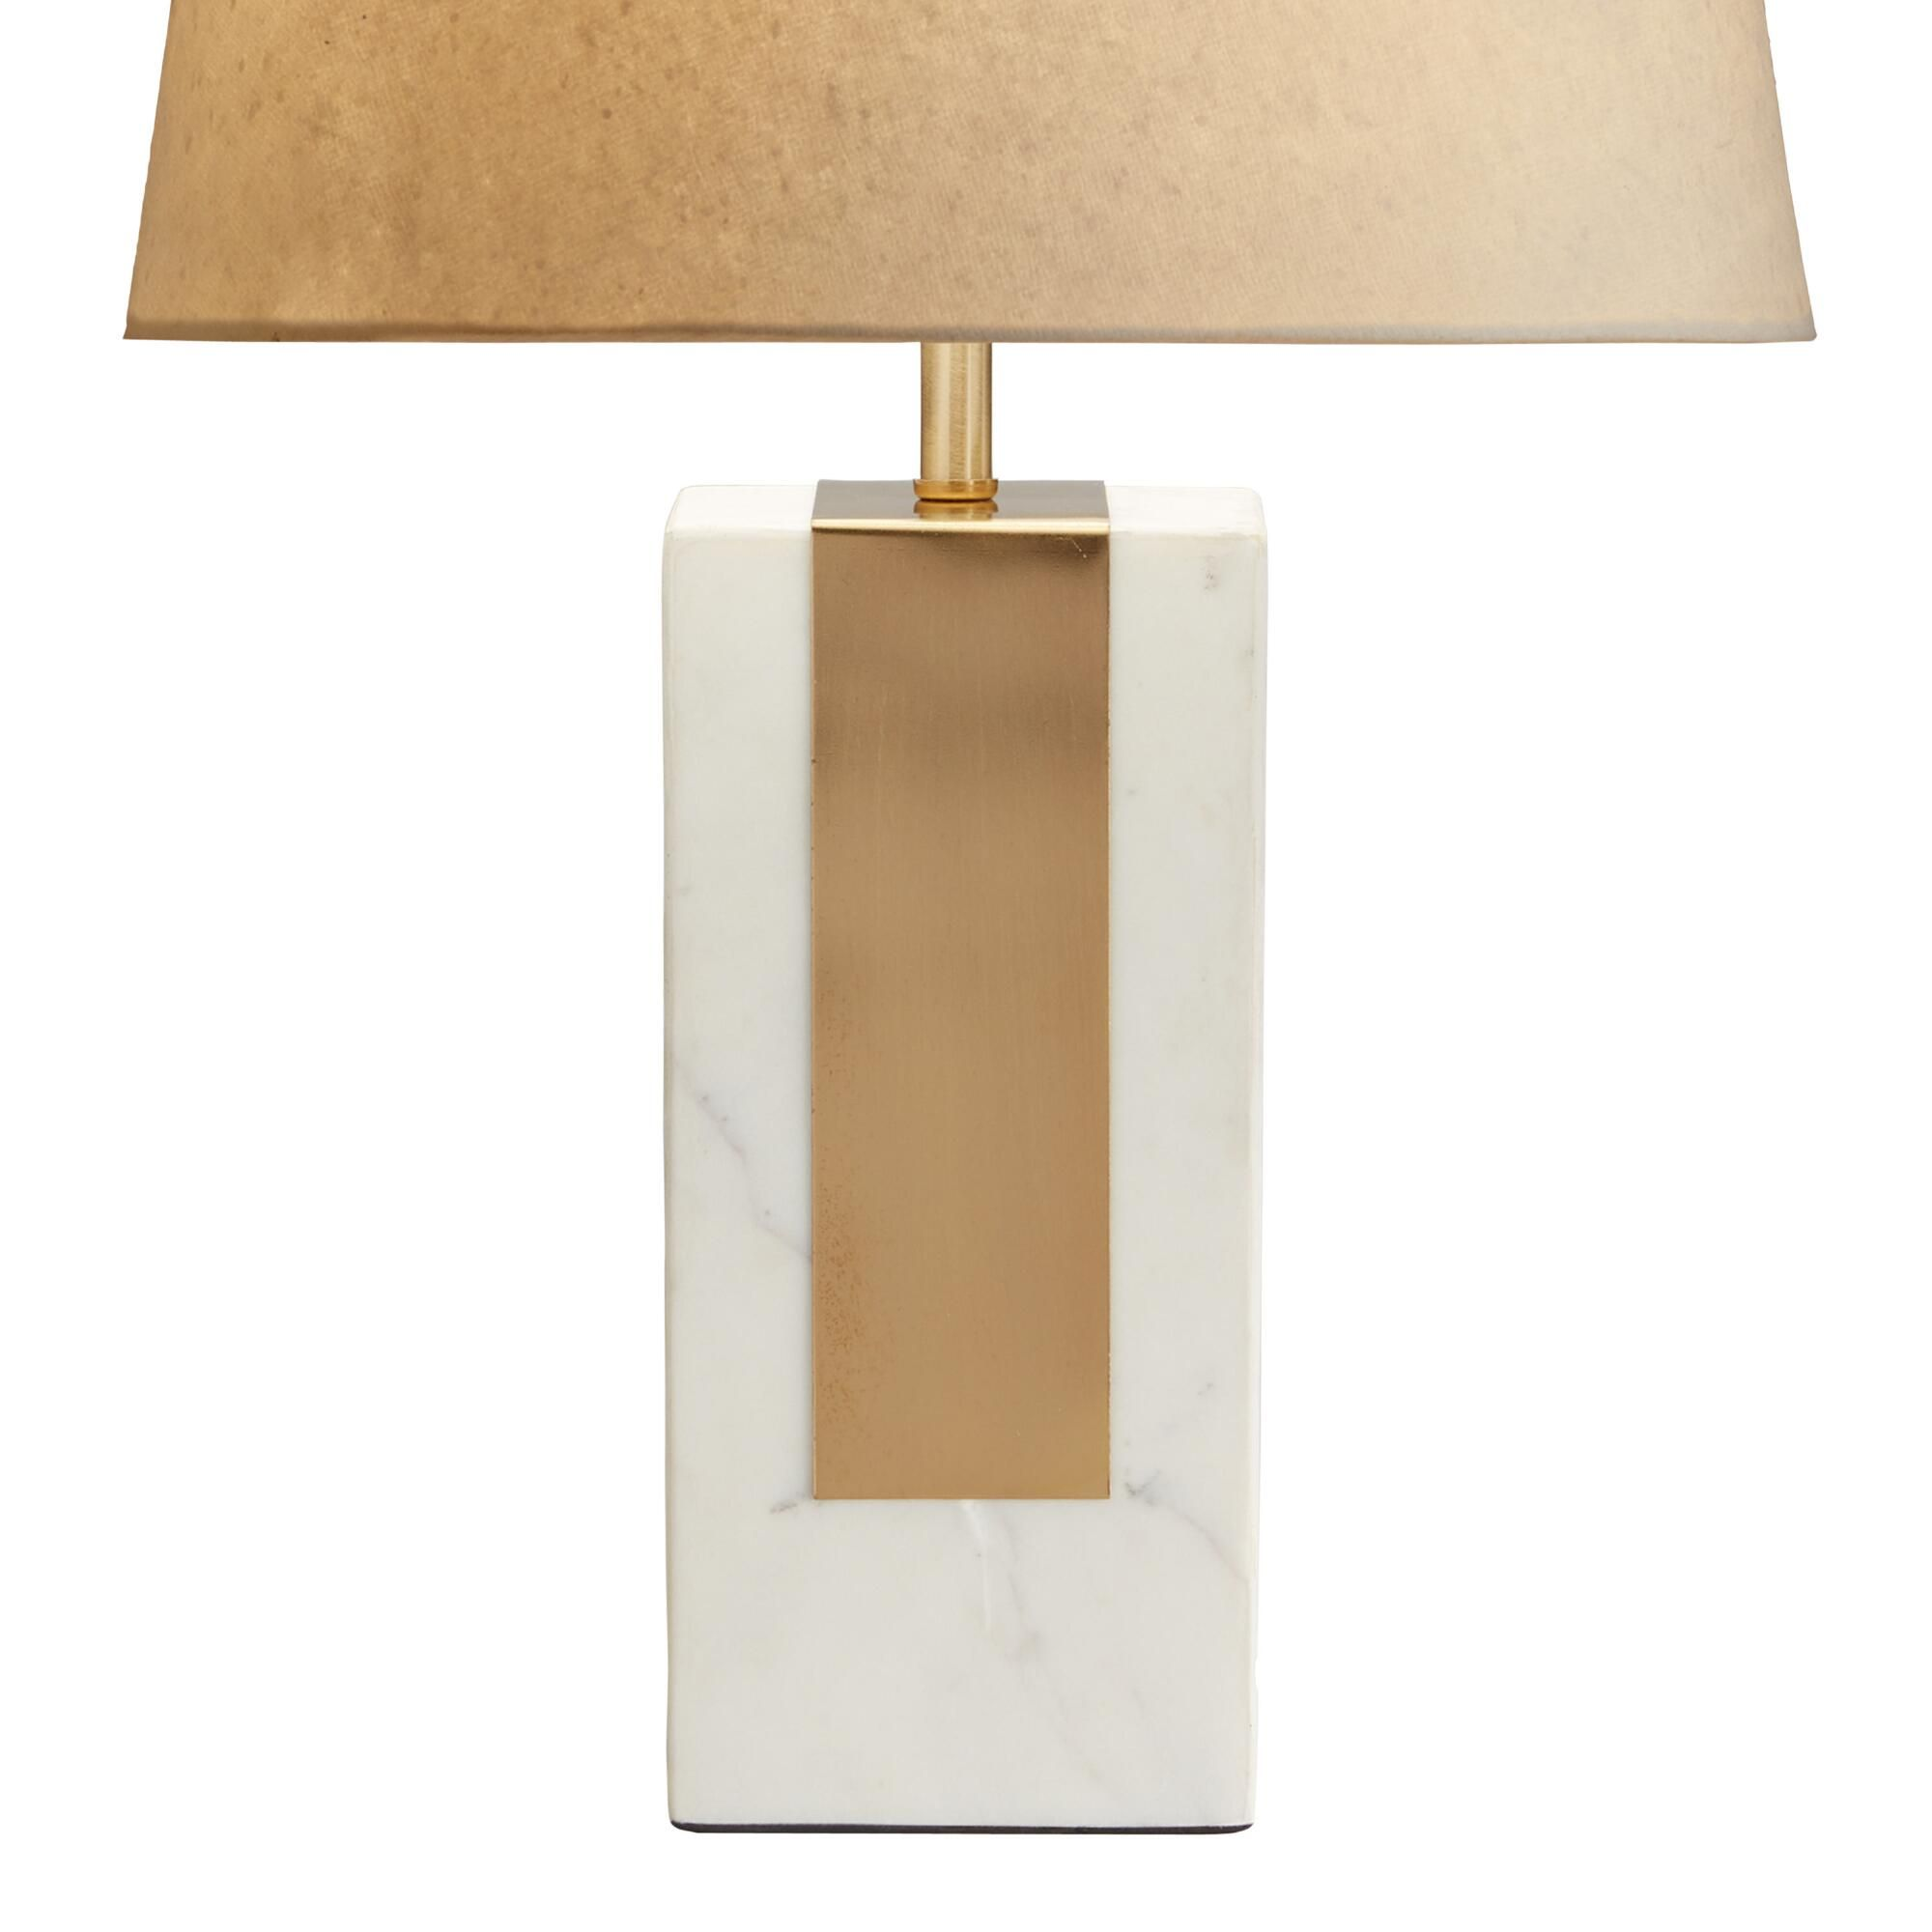 White Marble Block Table Lamp Base With Images Table Lamp Base